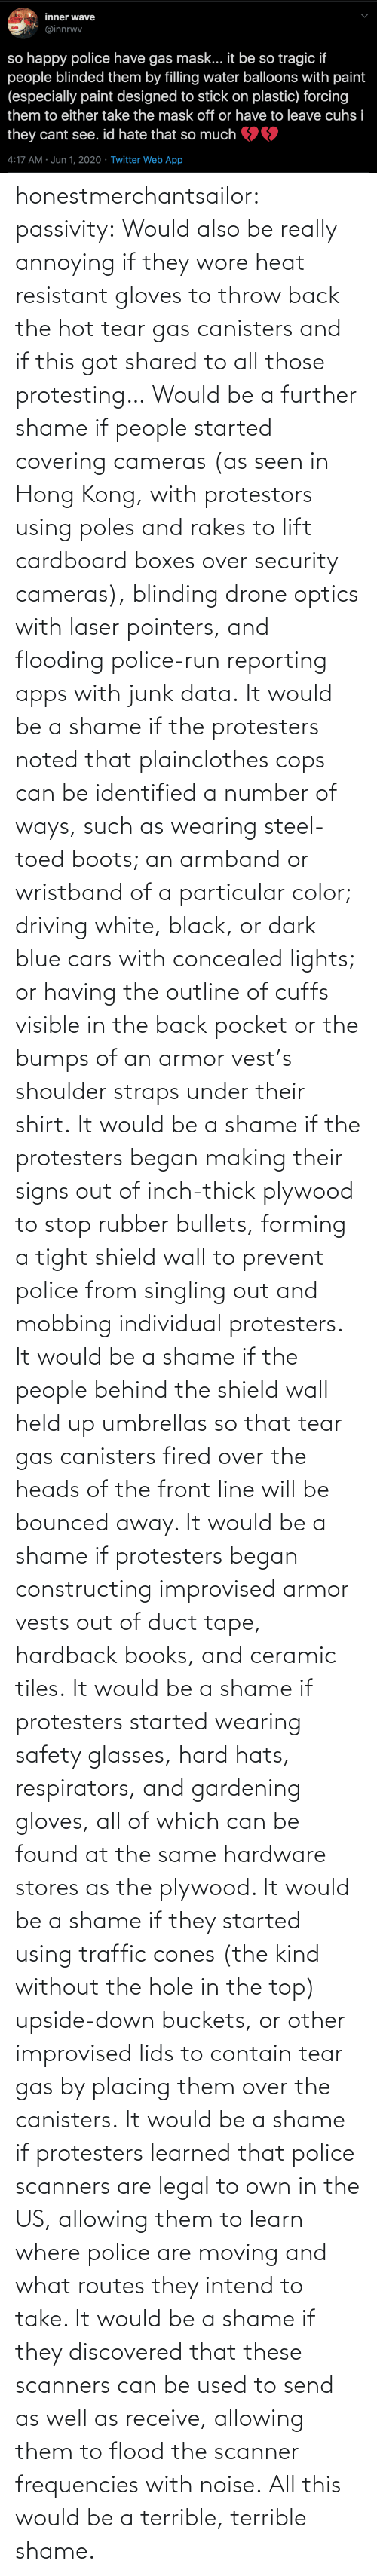 Driving: honestmerchantsailor: passivity: Would also be really annoying if they wore heat resistant gloves to throw back the hot tear gas canisters and if this got shared to all those protesting… Would be a further shame if people started covering cameras (as seen in Hong Kong, with protestors using poles and rakes to lift cardboard boxes over security cameras), blinding drone optics with laser pointers, and flooding police-run reporting apps with junk data. It would be a shame if the protesters noted that plainclothes cops can be identified a number of ways, such as wearing steel-toed boots; an armband or wristband of a particular color; driving white, black, or dark blue cars with concealed lights; or having the outline of cuffs visible in the back pocket or the bumps of an armor vest's shoulder straps under their shirt. It would be a shame if the protesters began making their signs out of inch-thick plywood to stop rubber bullets, forming a tight shield wall to prevent police from singling out and mobbing individual protesters. It would be a shame if the people behind the shield wall held up umbrellas so that tear gas canisters fired over the heads of the front line will be bounced away. It would be a shame if protesters began constructing improvised armor vests out of duct tape, hardback books, and ceramic tiles. It would be a shame if protesters started wearing safety glasses, hard hats, respirators, and gardening gloves, all of which can be found at the same hardware stores as the plywood. It would be a shame if they started using traffic cones (the kind without the hole in the top) upside-down buckets, or other improvised lids to contain tear gas by placing them over the canisters. It would be a shame if protesters learned that police scanners are legal to own in the US, allowing them to learn where police are moving and what routes they intend to take. It would be a shame if they discovered that these scanners can be used to send as well as receive, allowing them to flood the scanner frequencies with noise. All this would be a terrible, terrible shame.